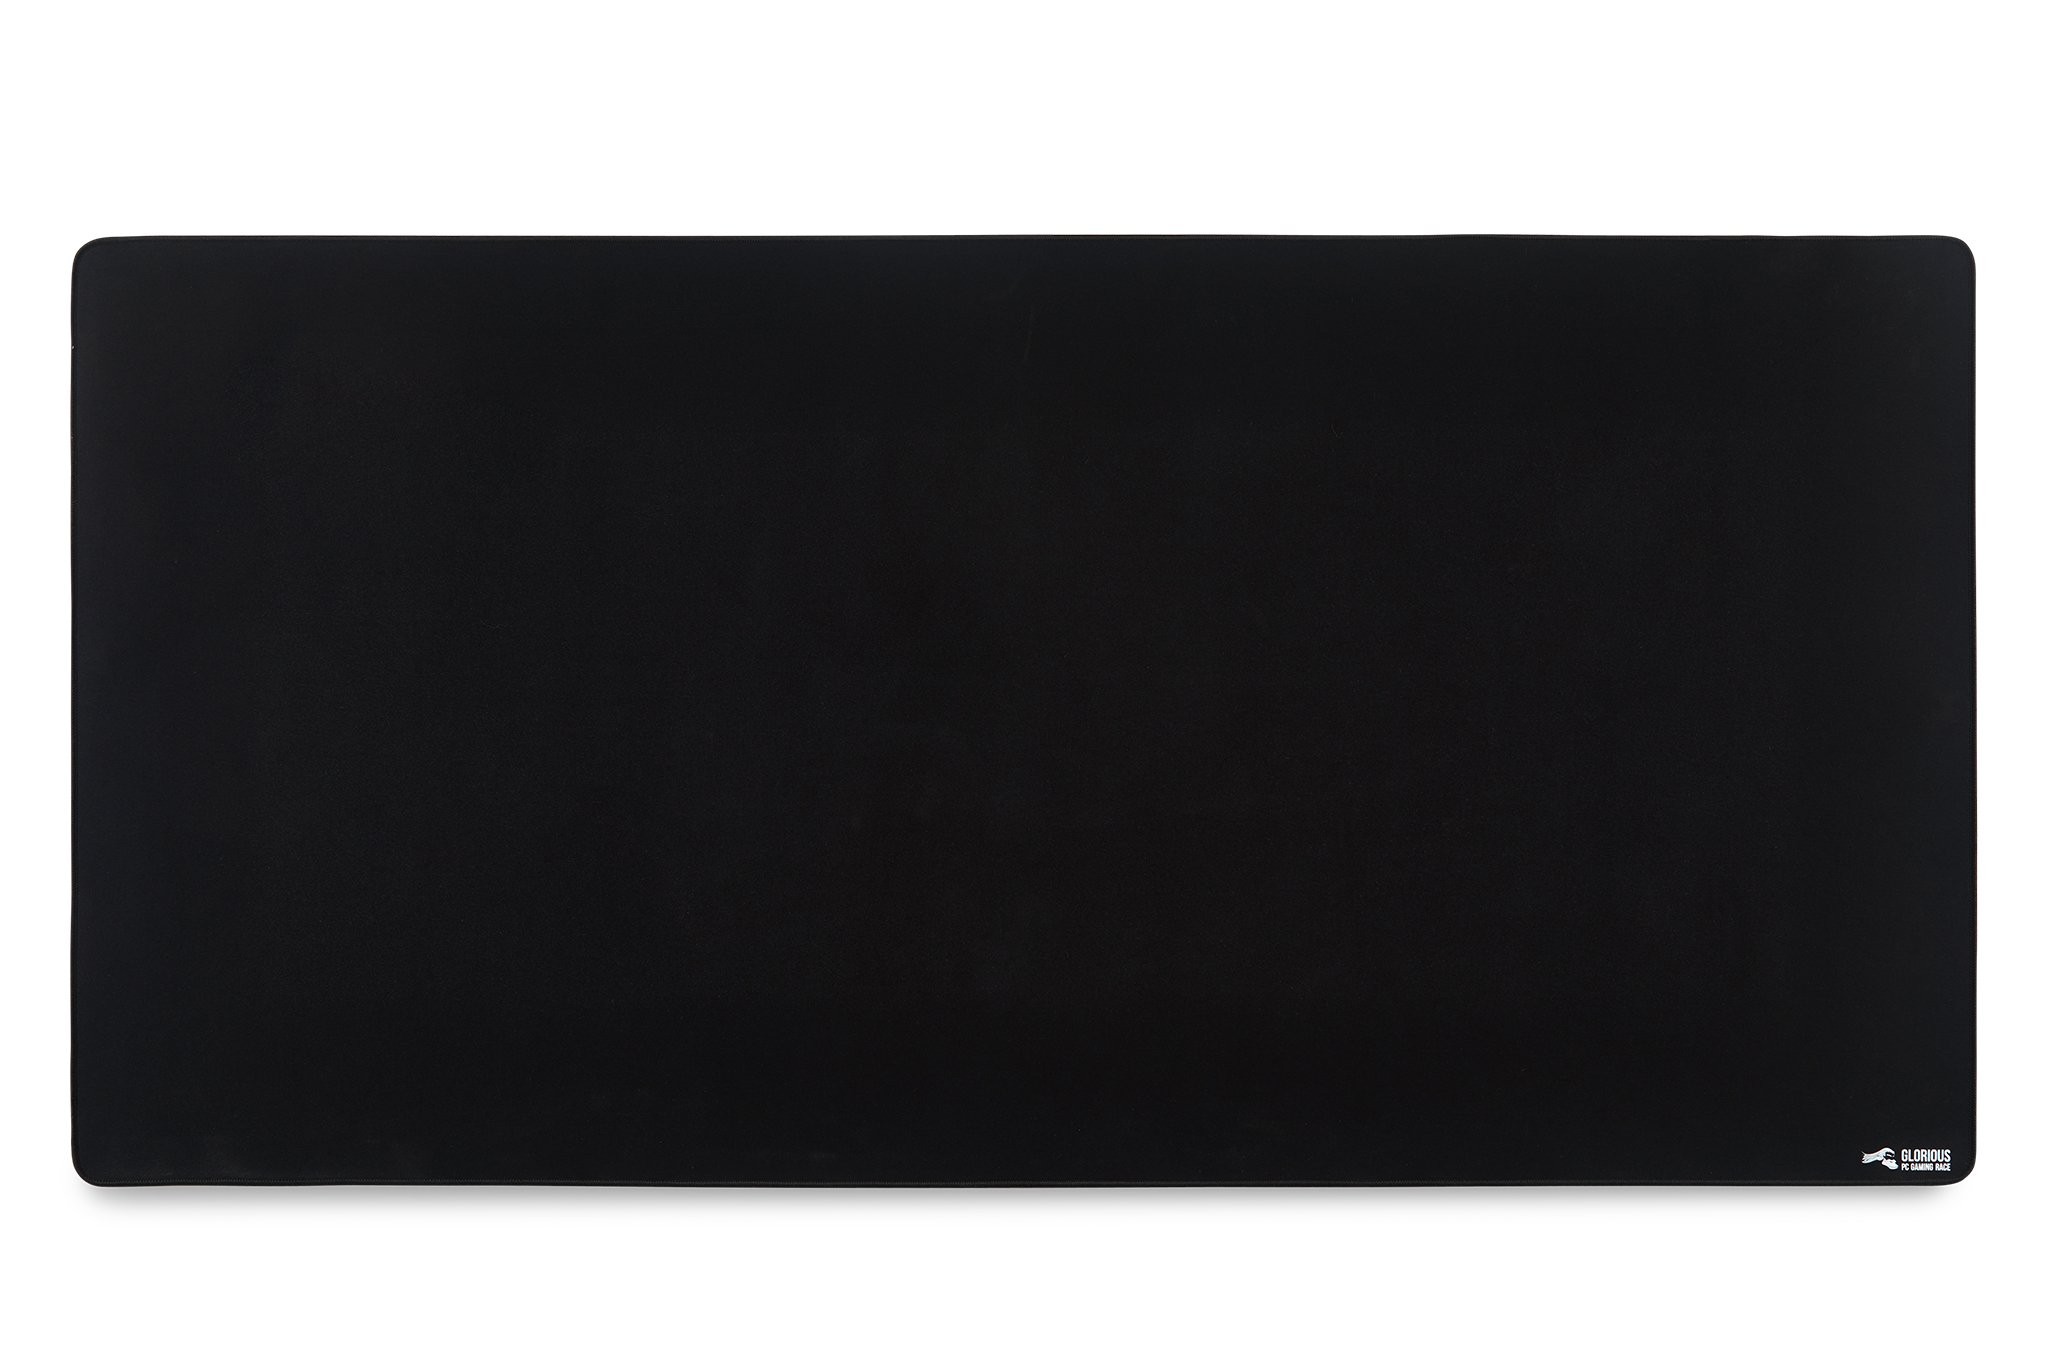 Glorious 3XL Extended Gaming Mouse Mat/Pad - Large, Wide (XLarge) Black Cloth Mousepad, Stitched Edges | 48x24'' (G-3XL) by Glorious PC Gaming Race